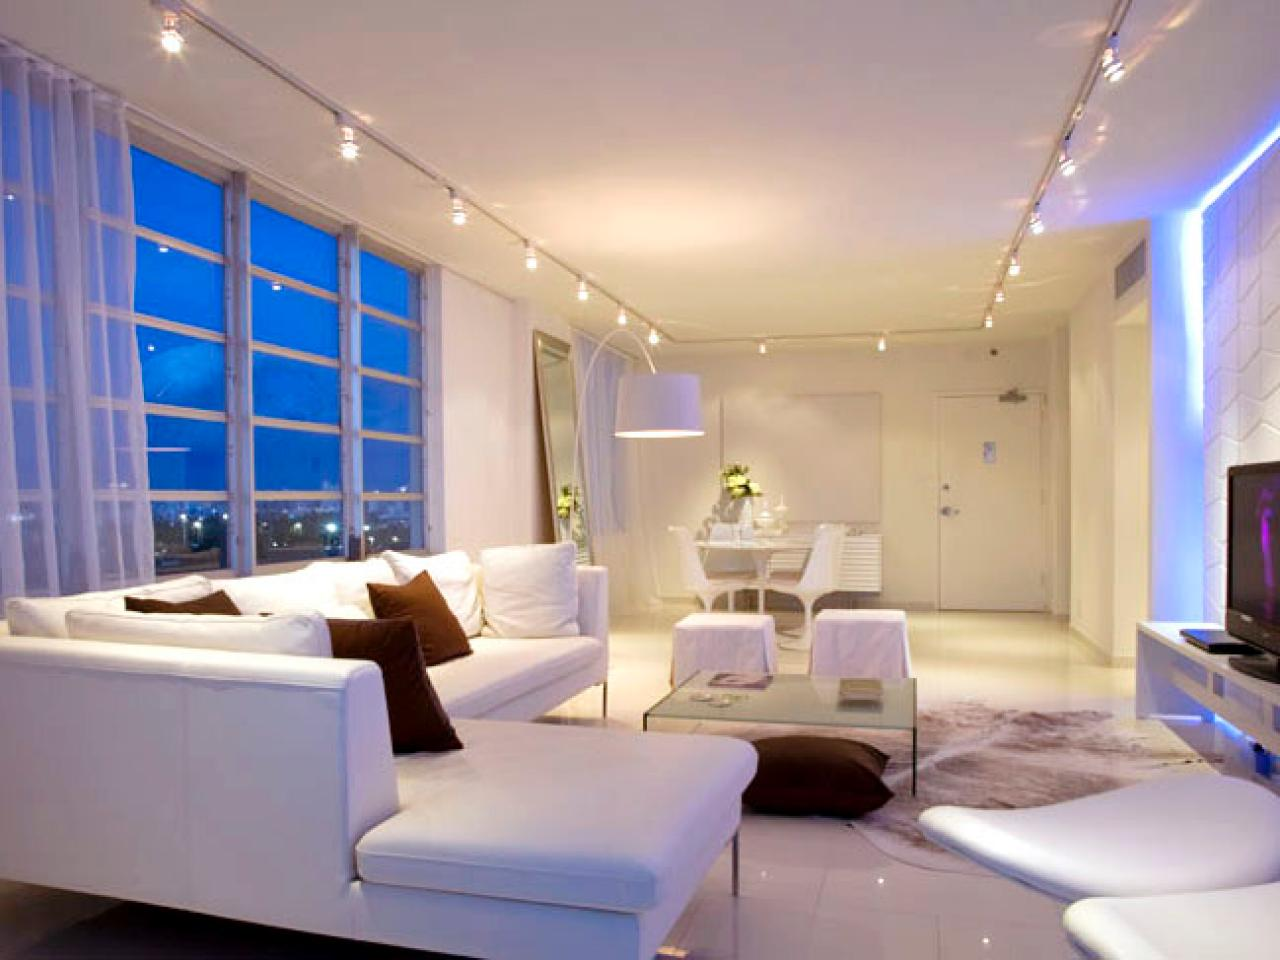 Living Room Lighting Tips | Home Remodeling - Ideas for Basements ...